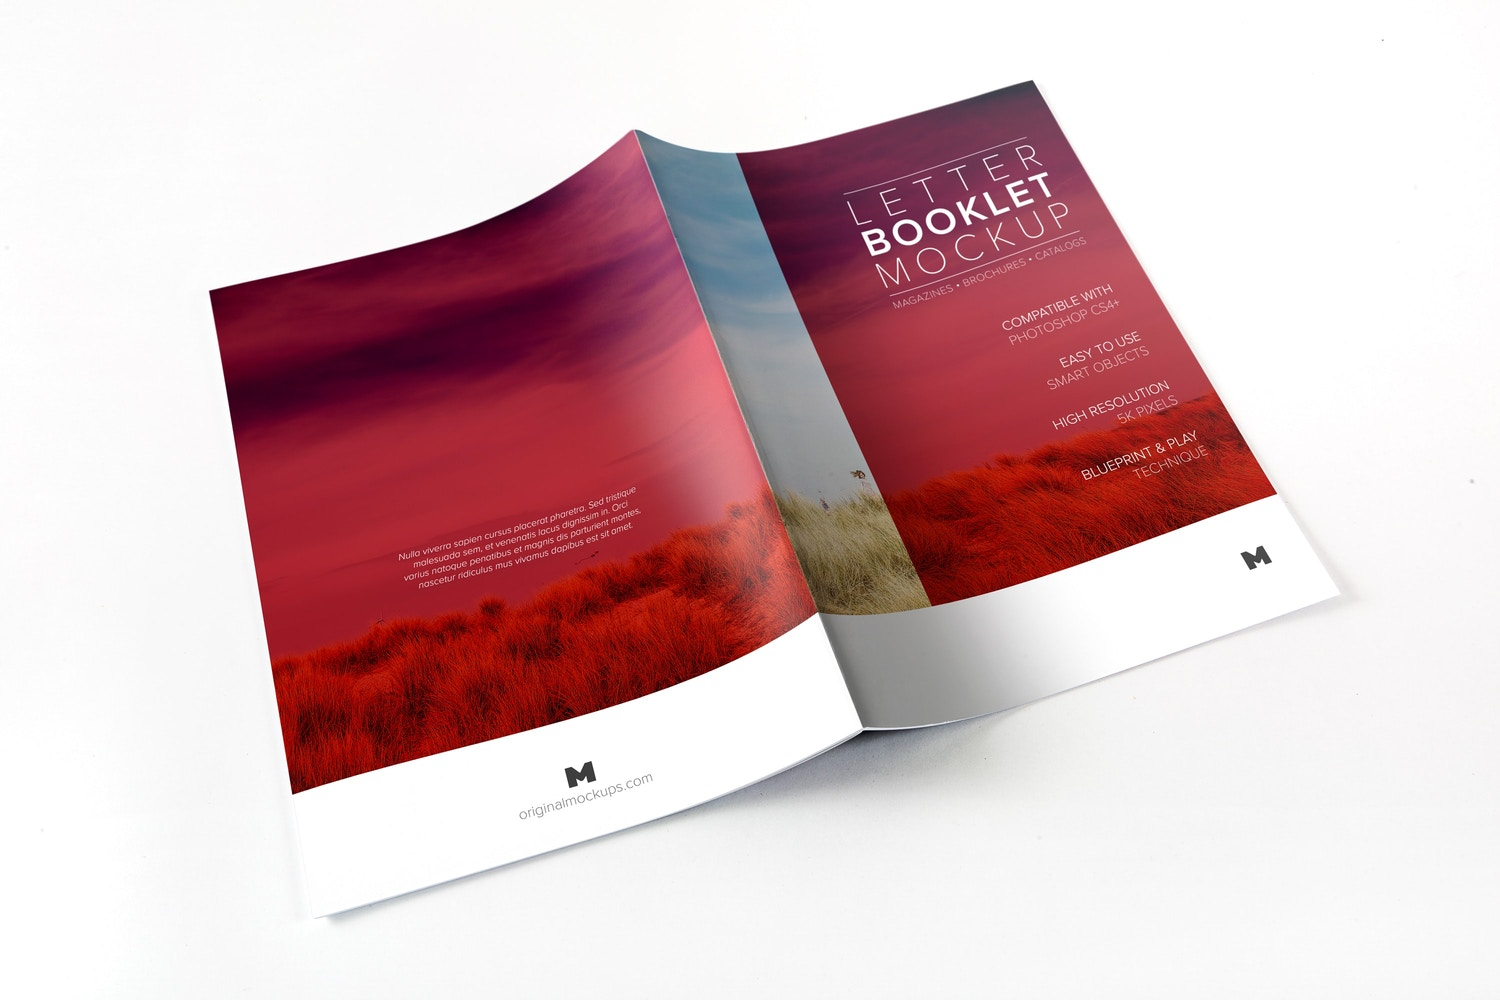 Letter Booklet Spreads Covers Mockup 01 by Original Mockups on Original Mockups